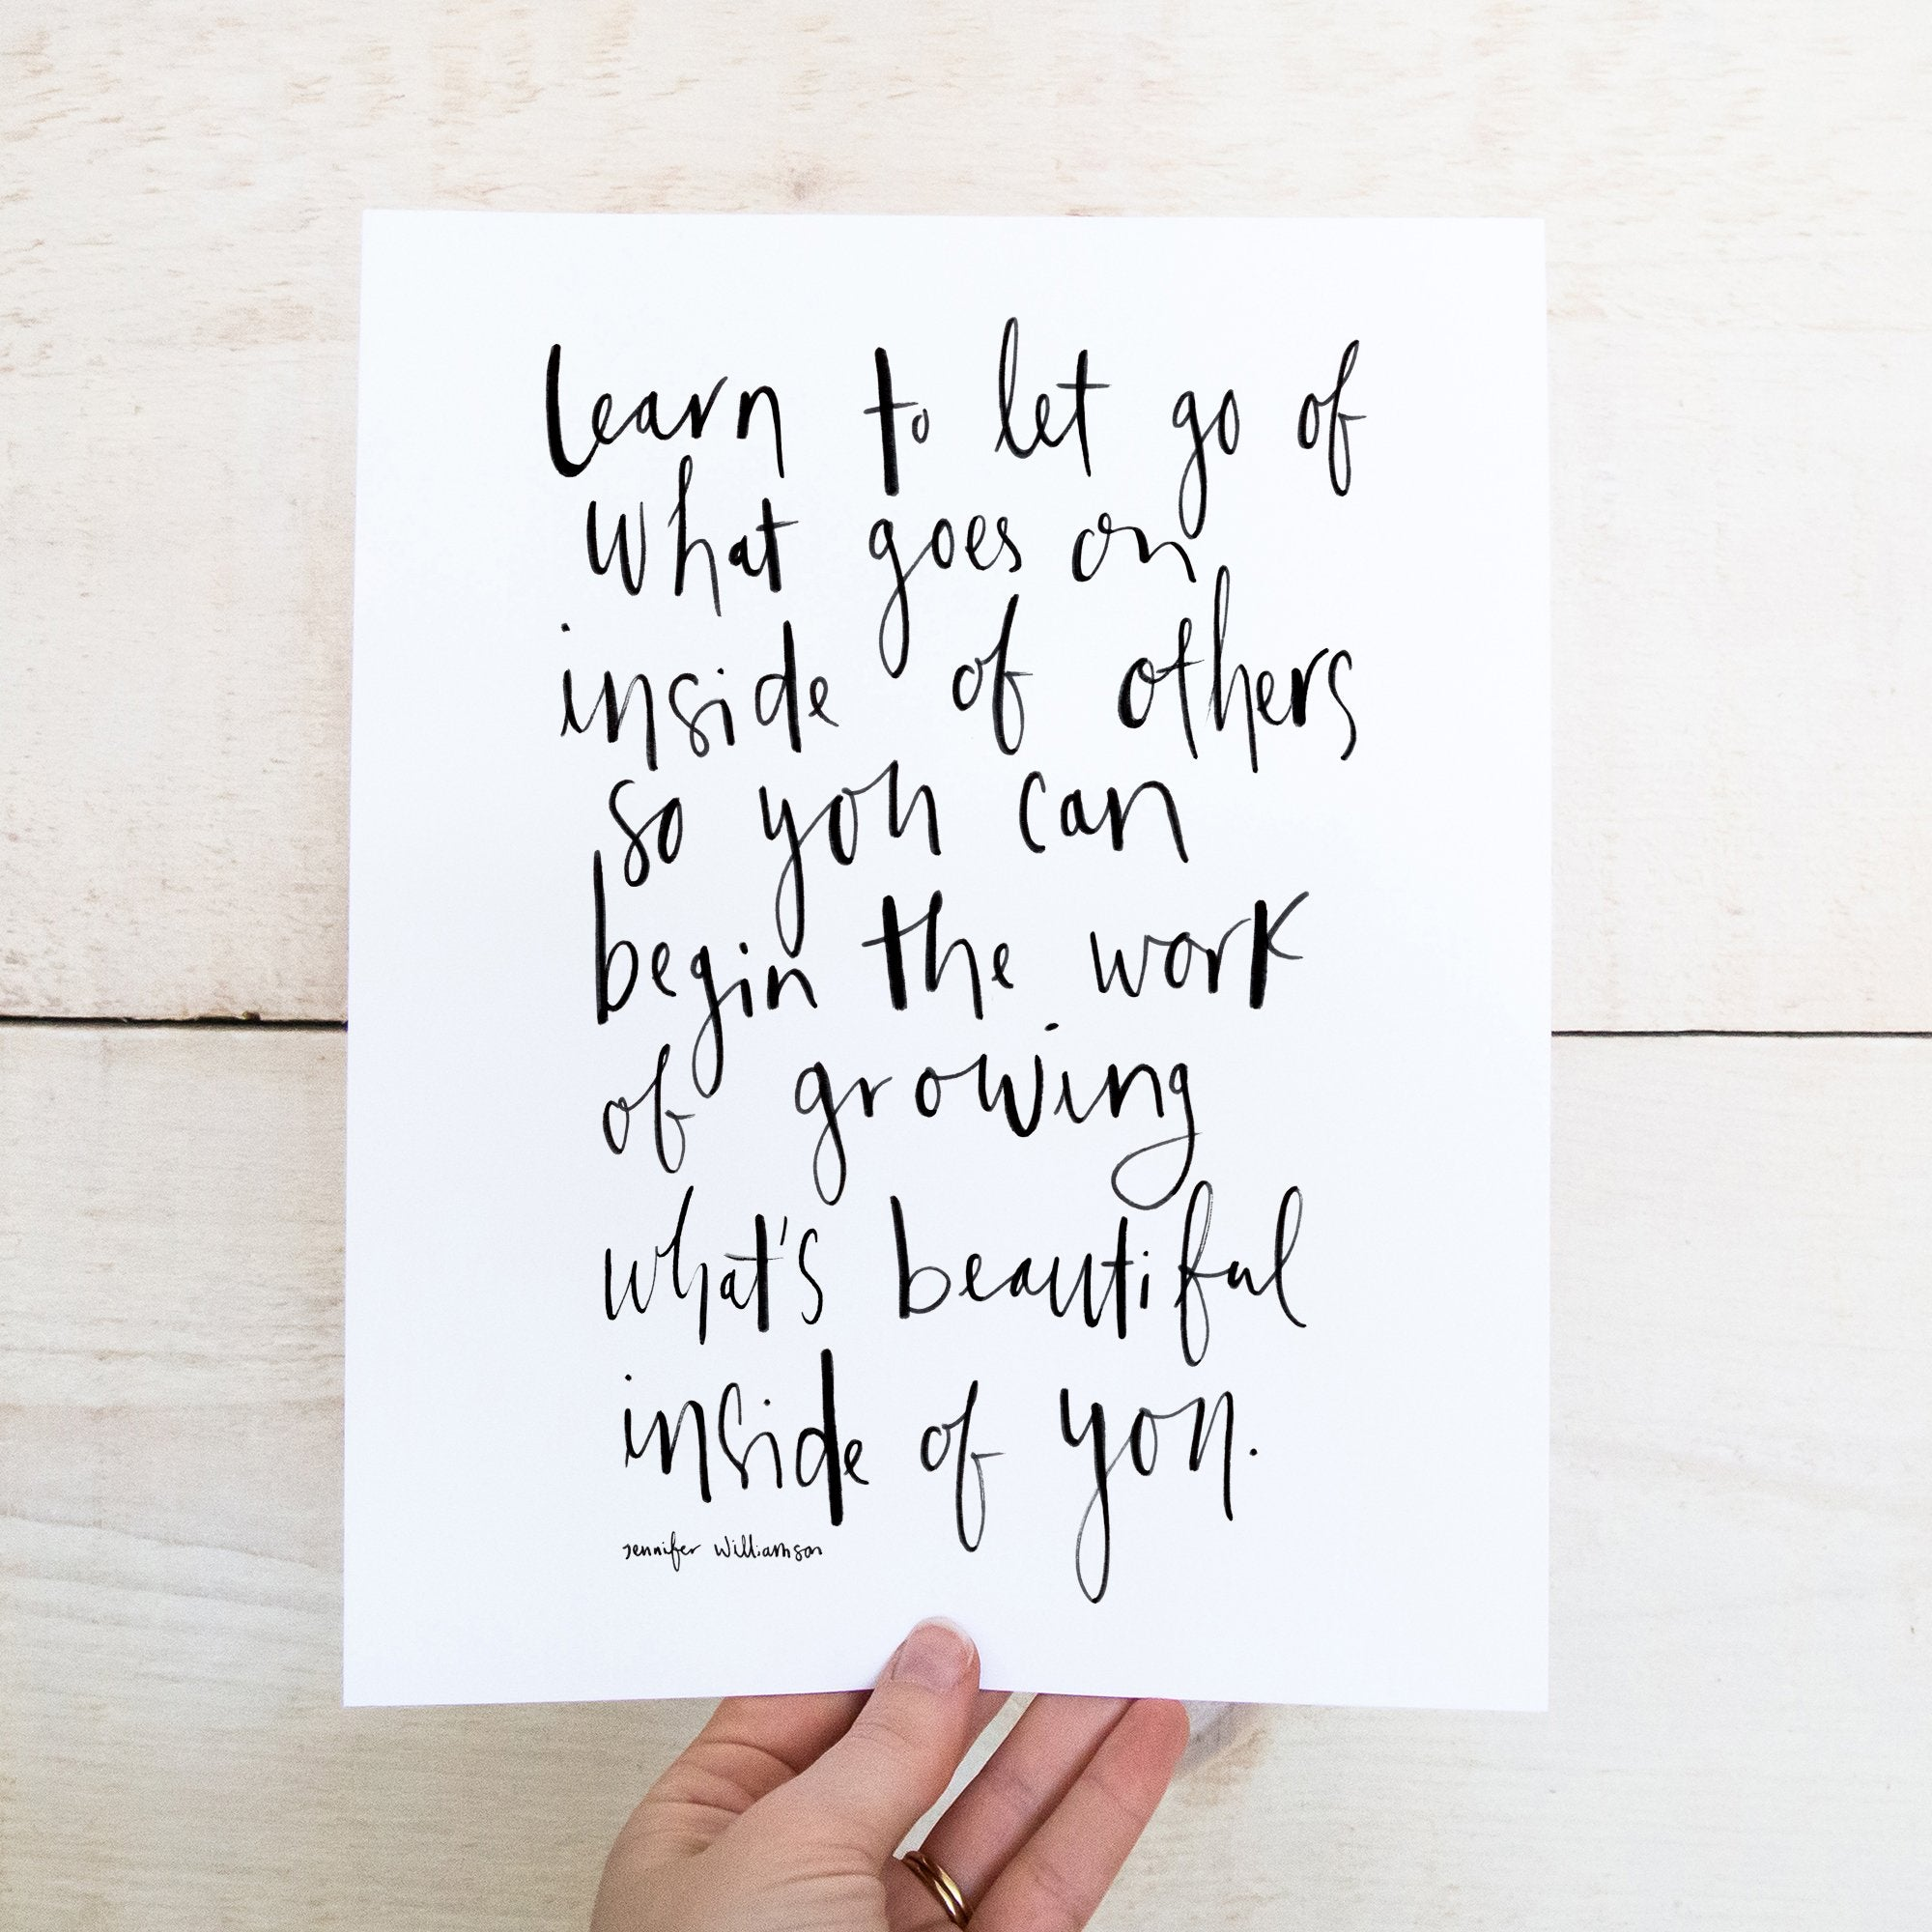 What's Beautiful Inside Of You Hand Lettered Poetry Art Print